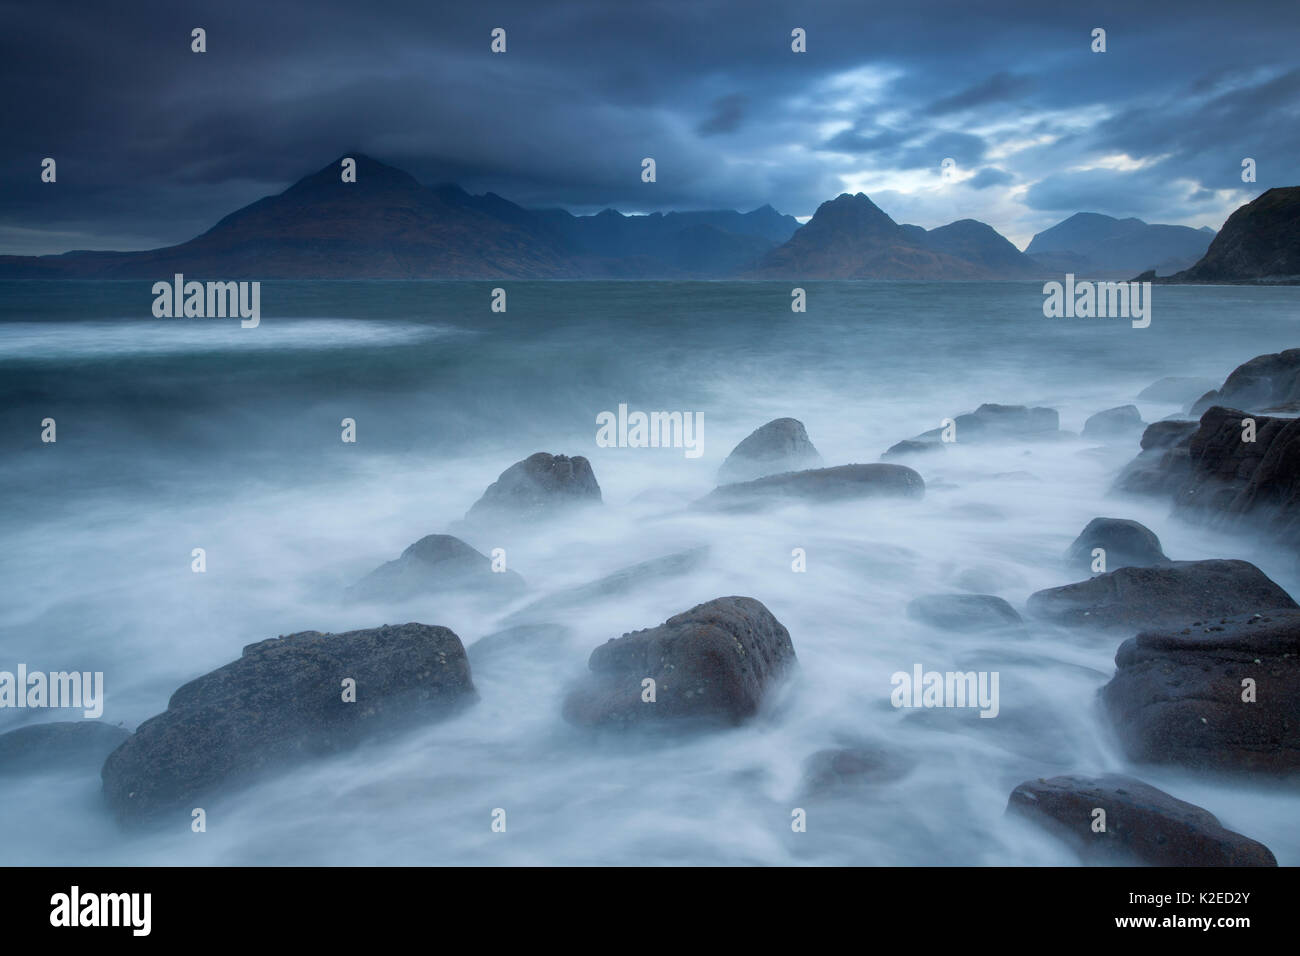 Cuillins Mountains seen from Elgol, Isle of Skye, Scotland, UK, November 2011. - Stock Image